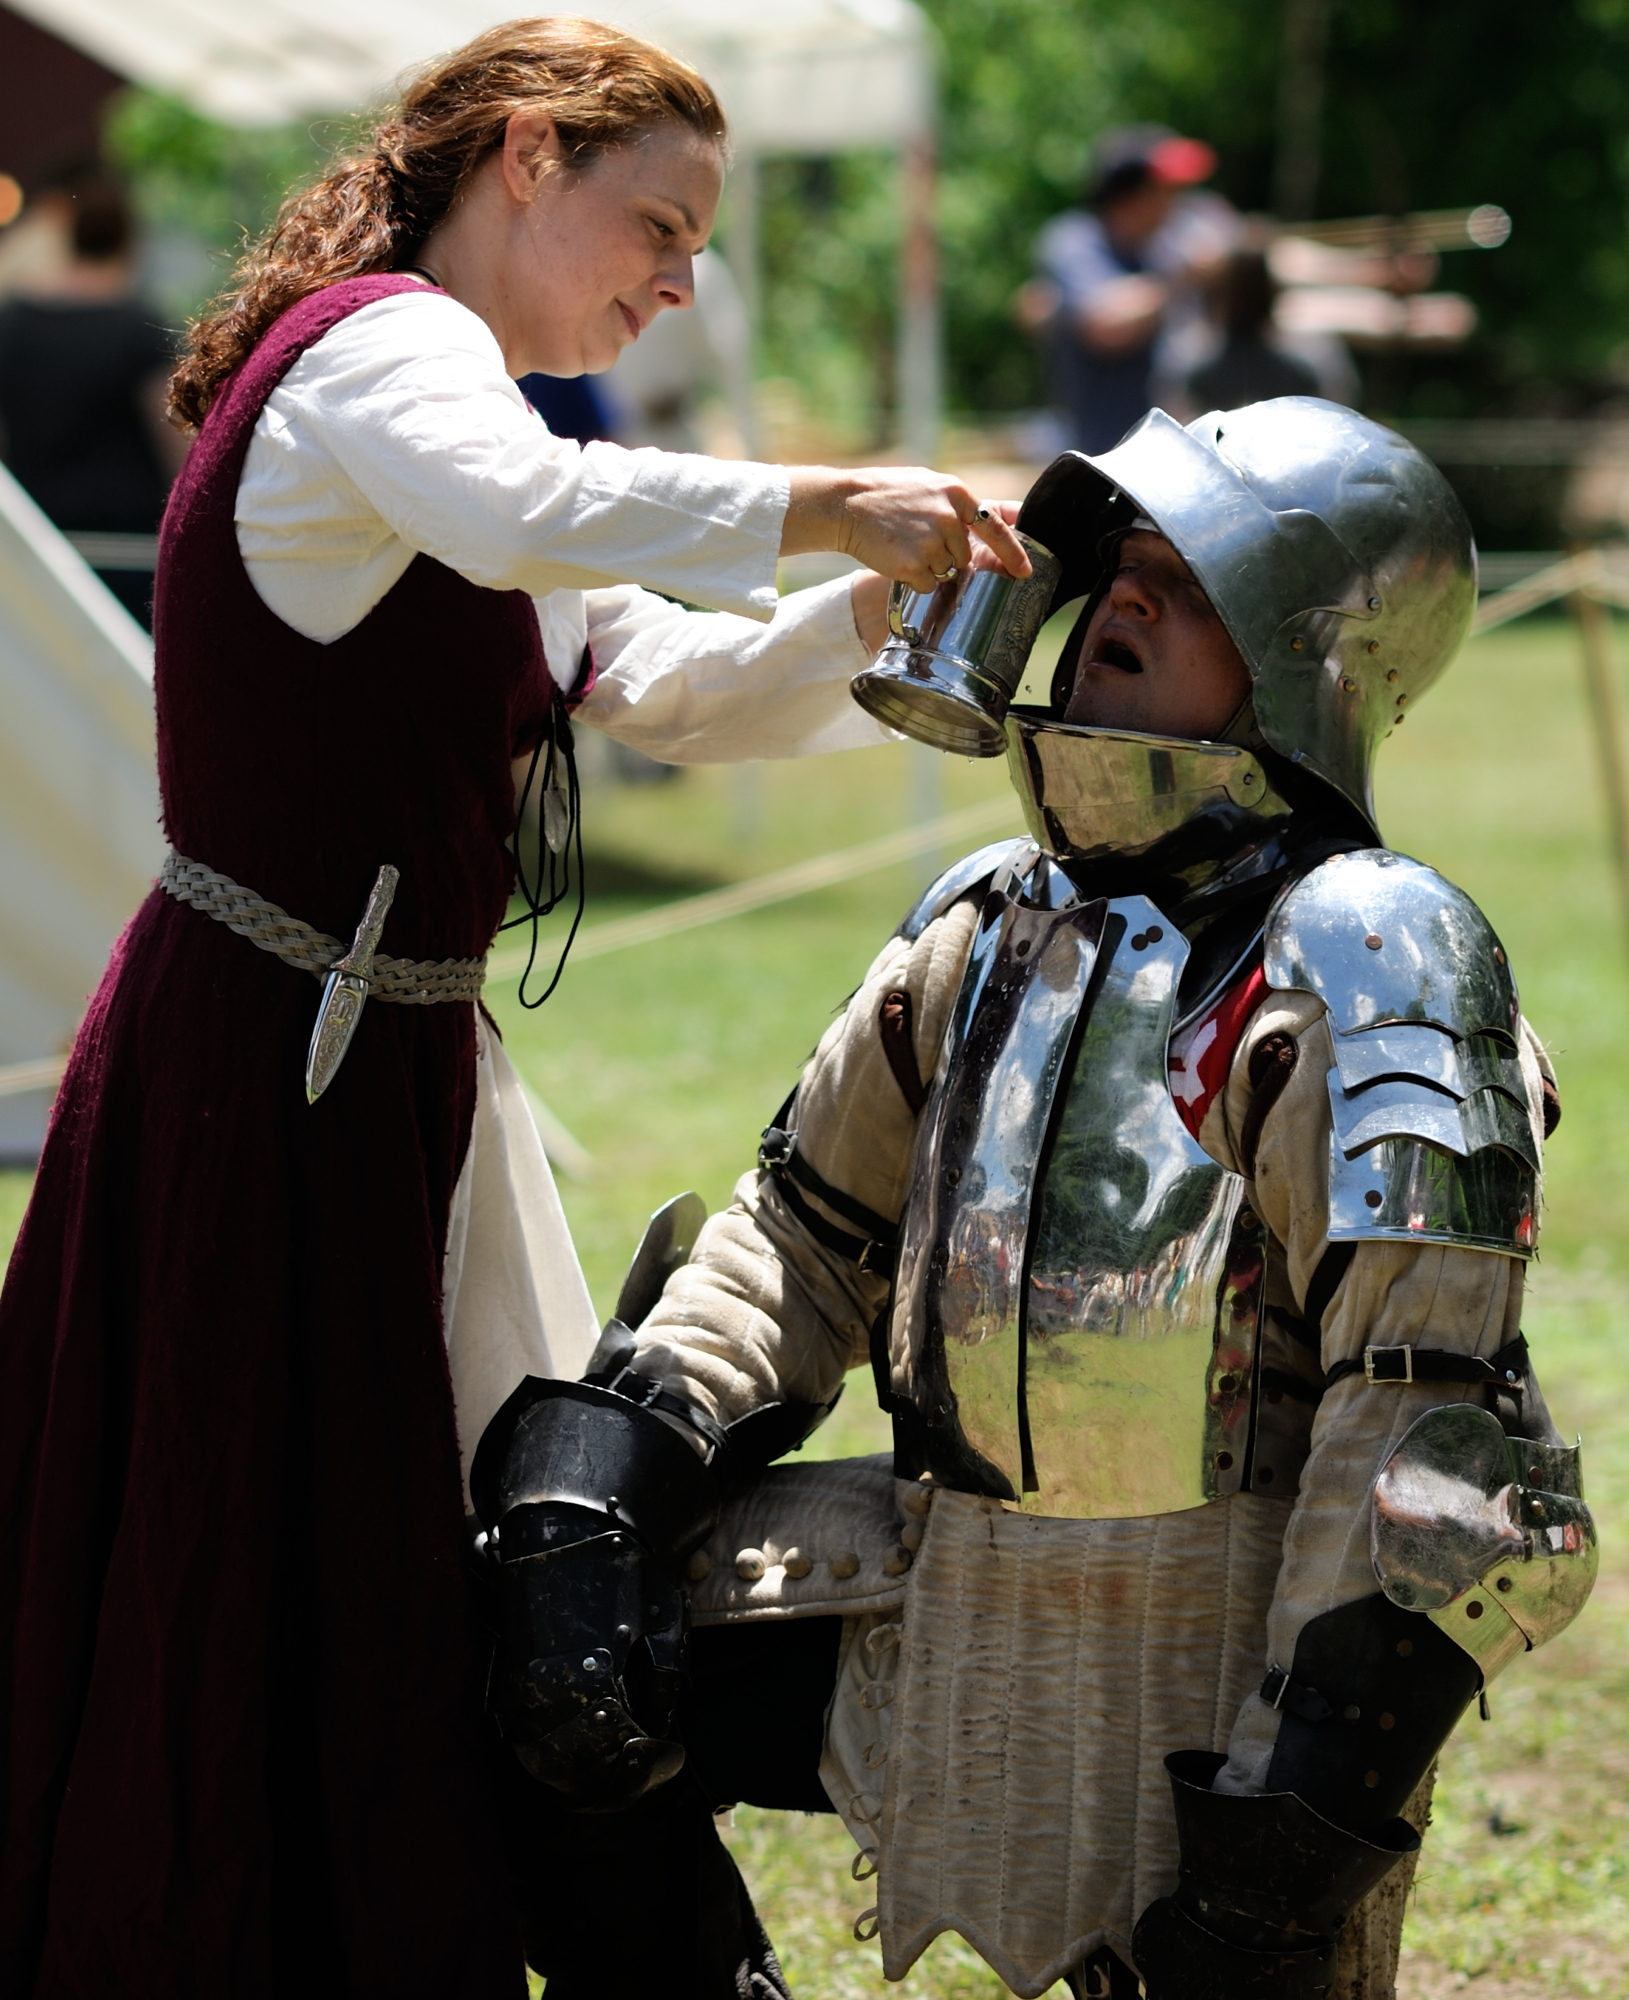 Man in armor gets a drink from a wench